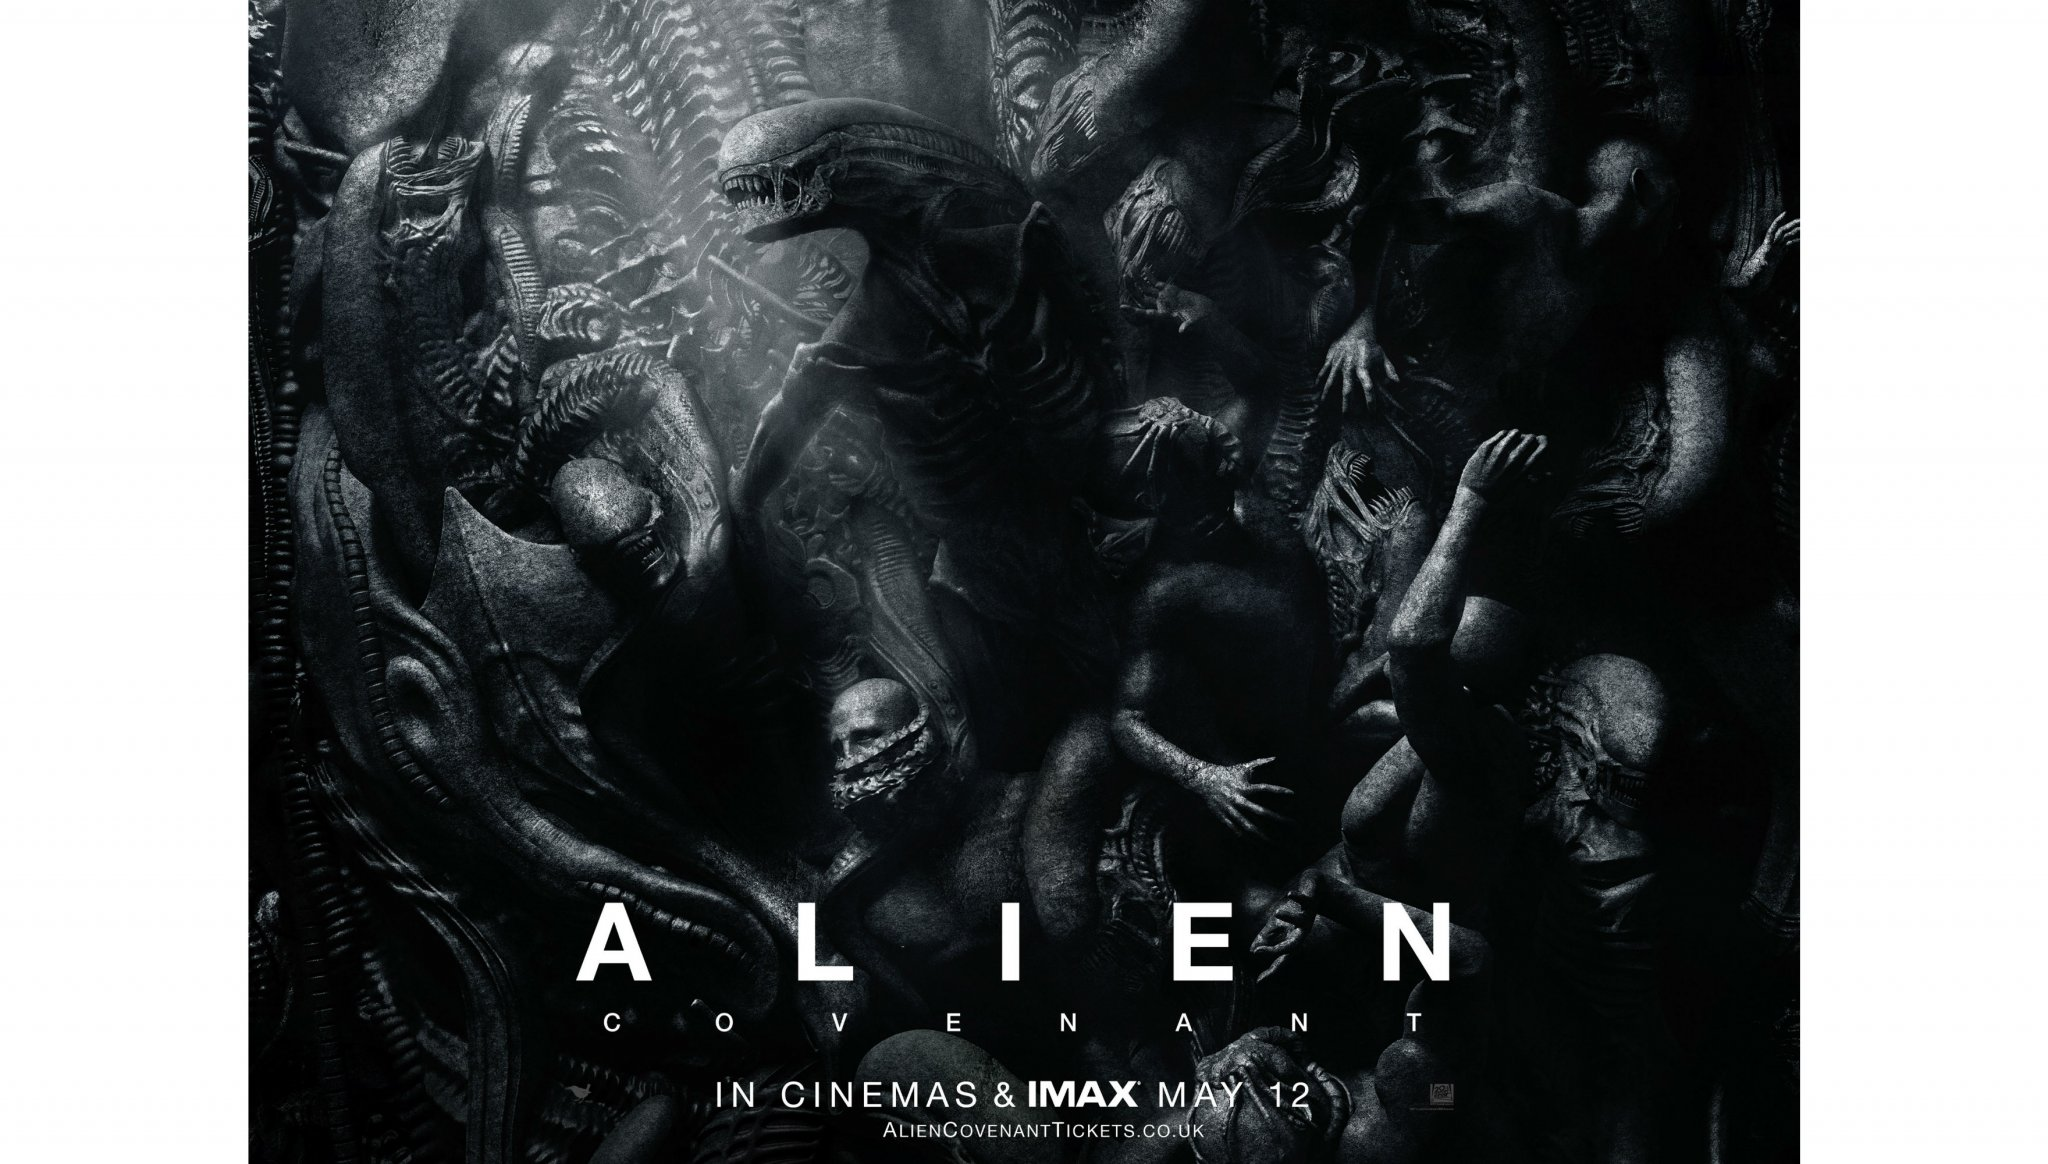 Win movie merchandise from Alien Covenant - HeyUGuys